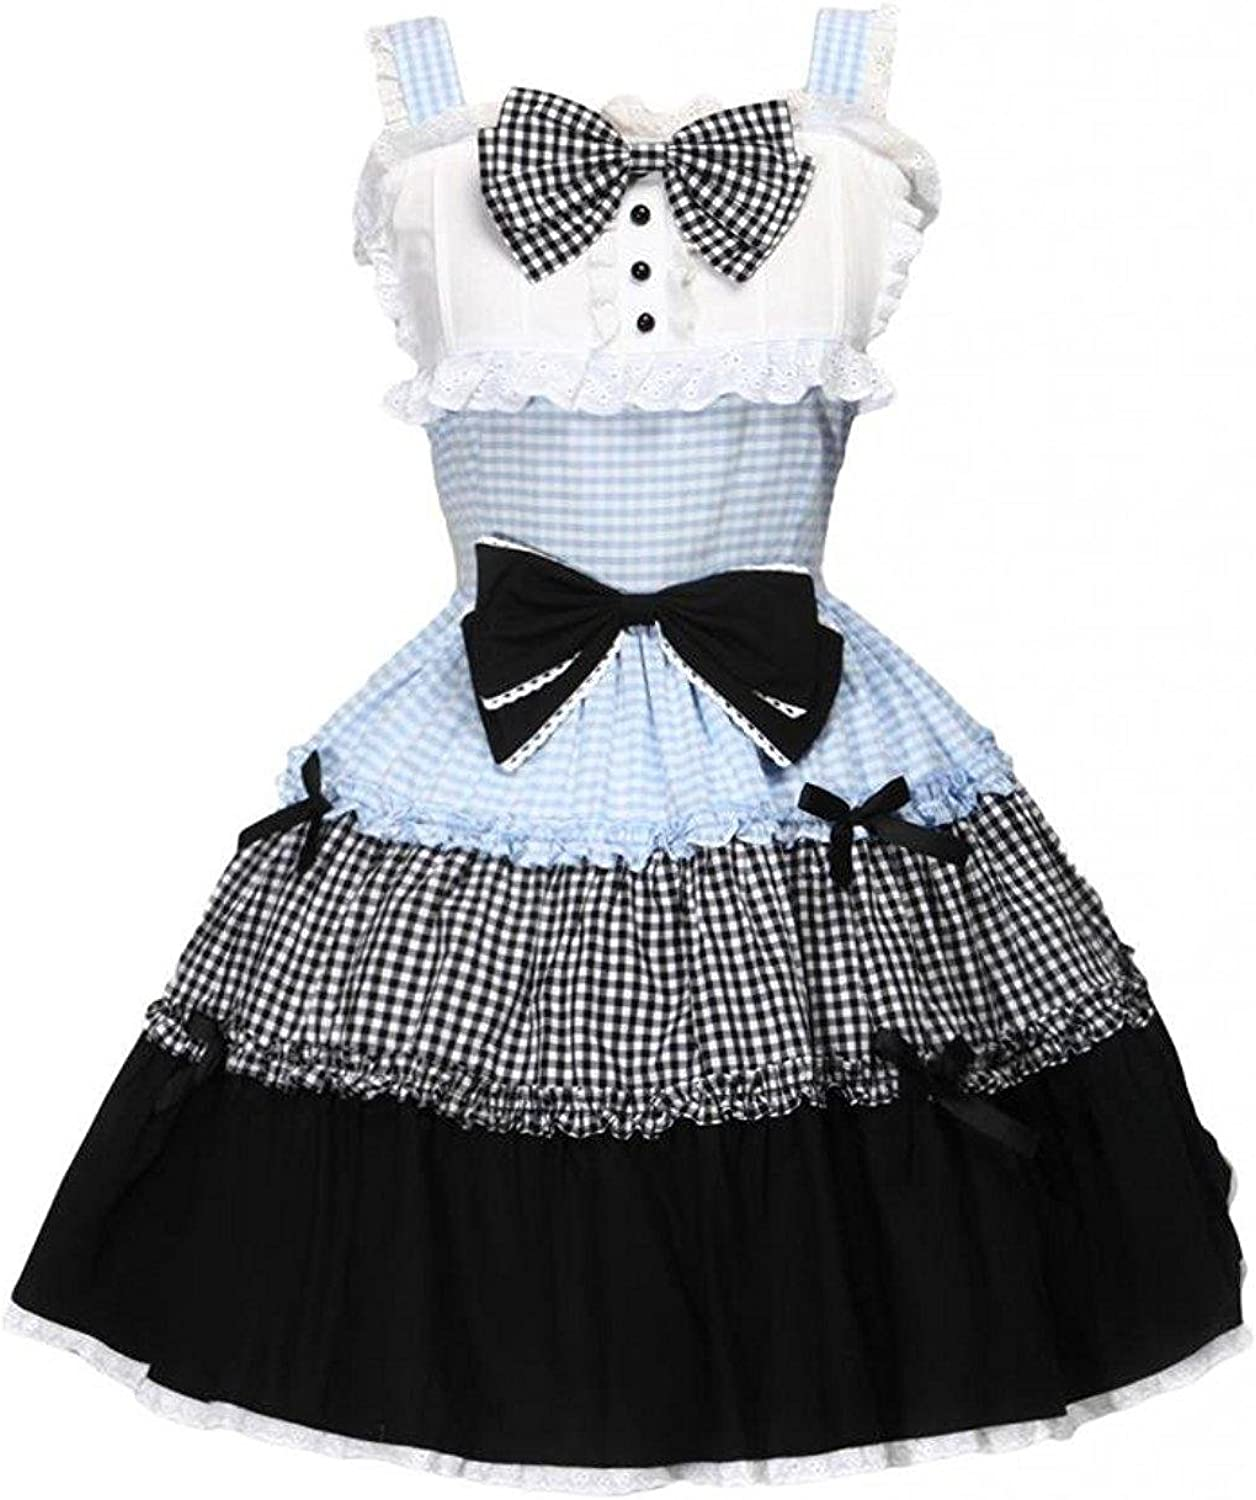 Cemavin Womens Multi color Cotton Bow Cute Icecream Lolita Jumper Skirt